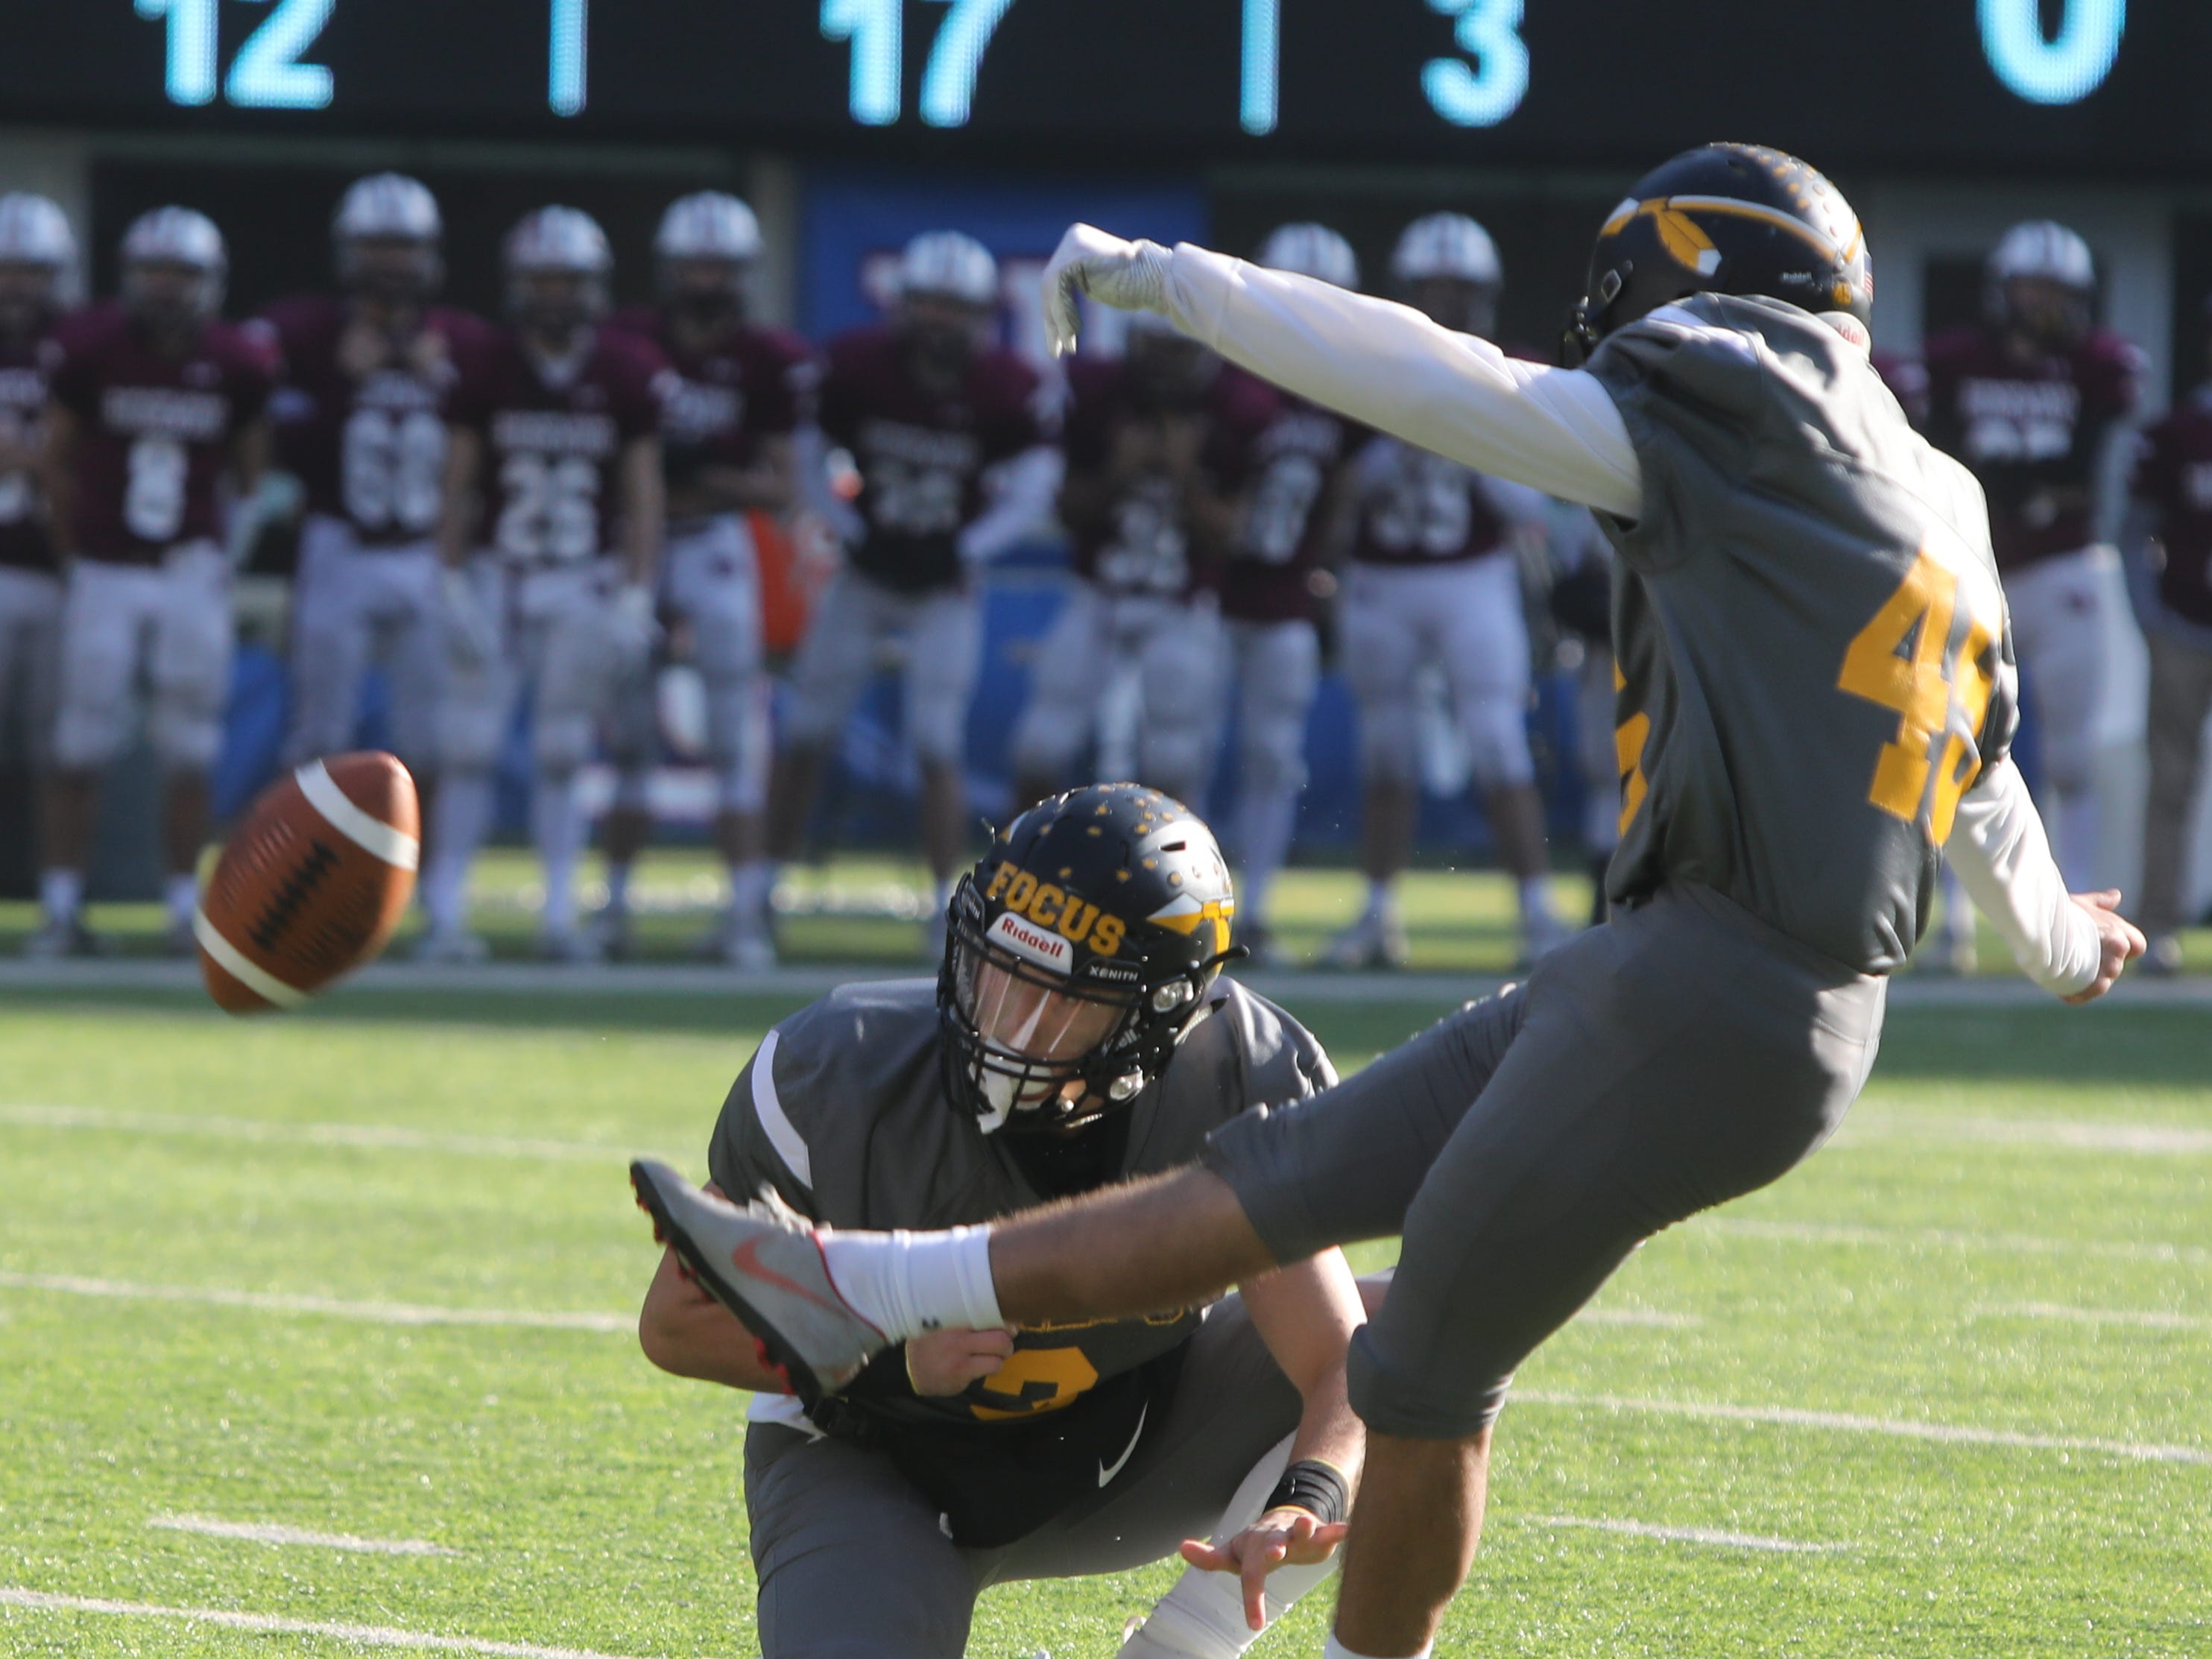 Robert Konya of Piscataway kicks a 34 yard field goal in the first quarter to open the scoring for the Chiefs.